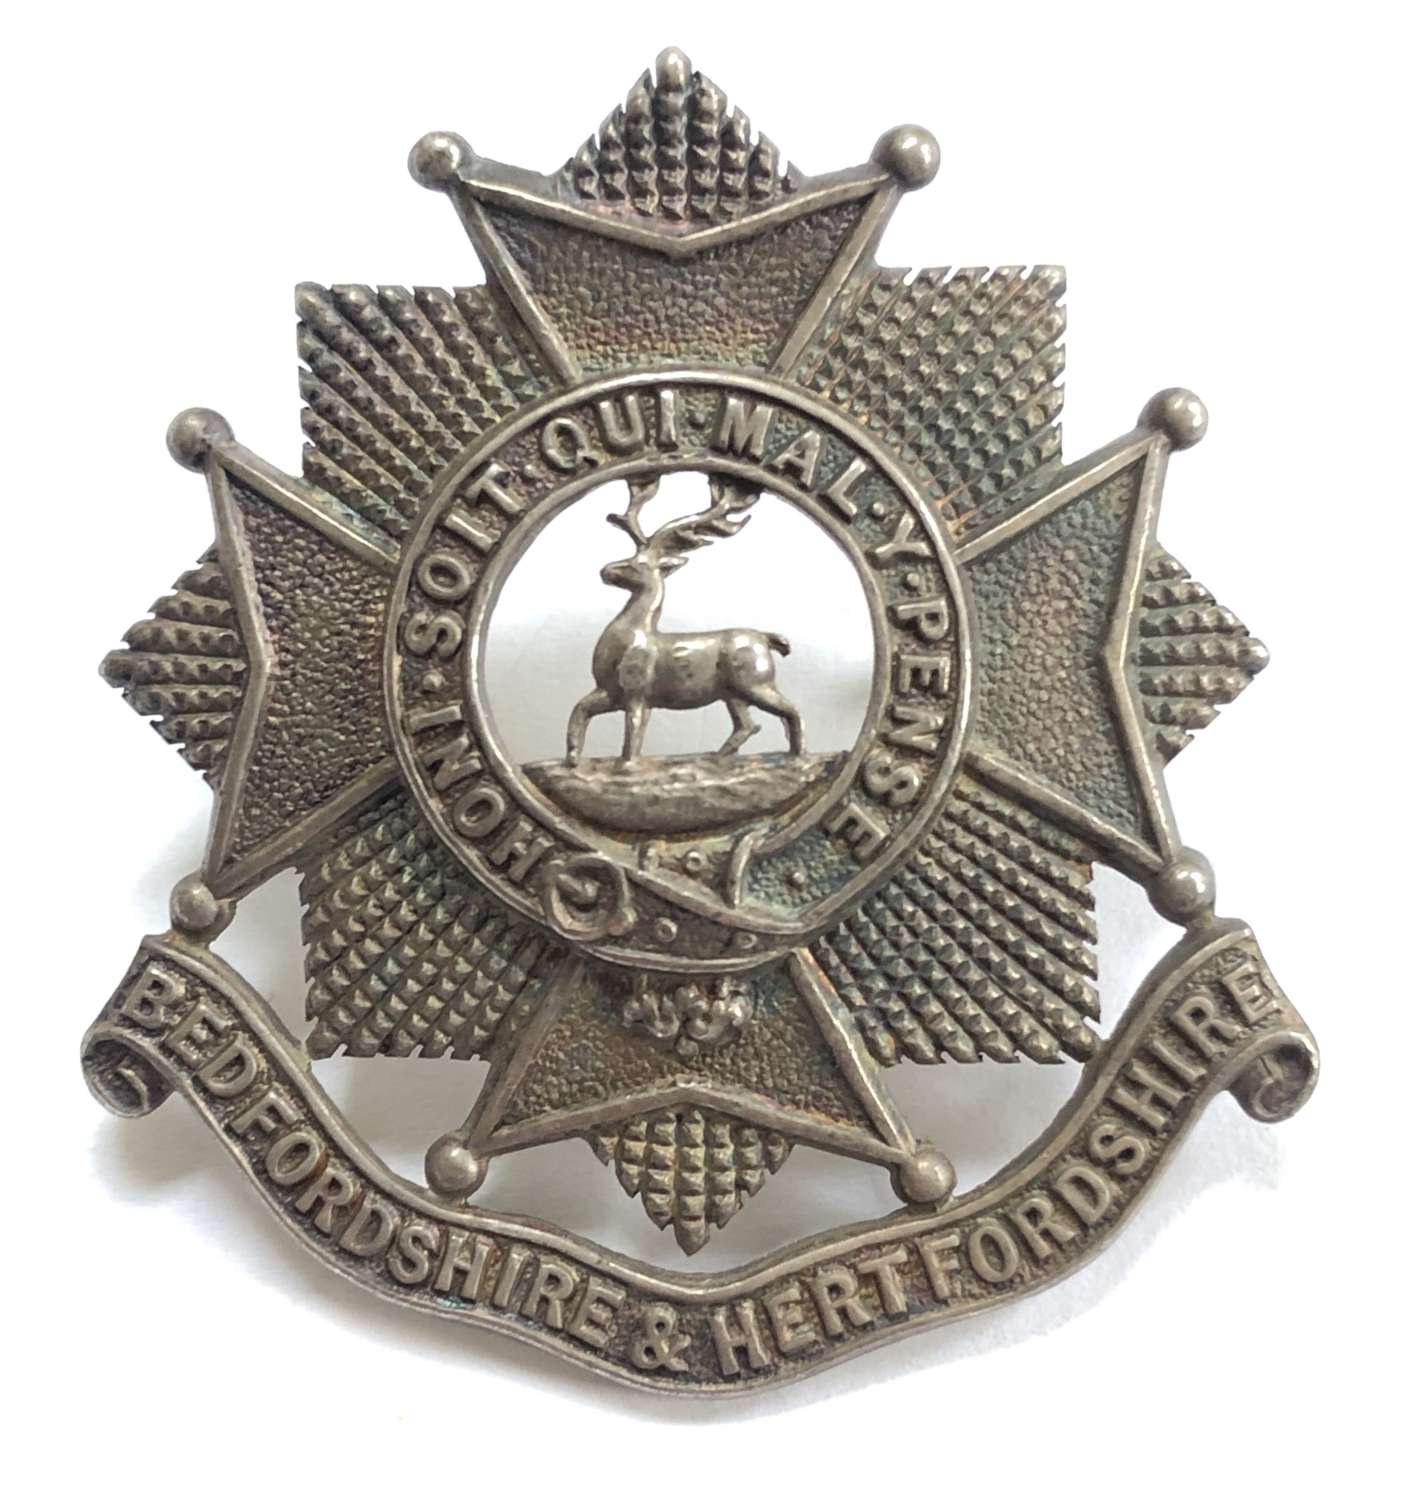 Bedfordshire & Hertfordshire Regiment WW2 silver cap badge by Gaunt